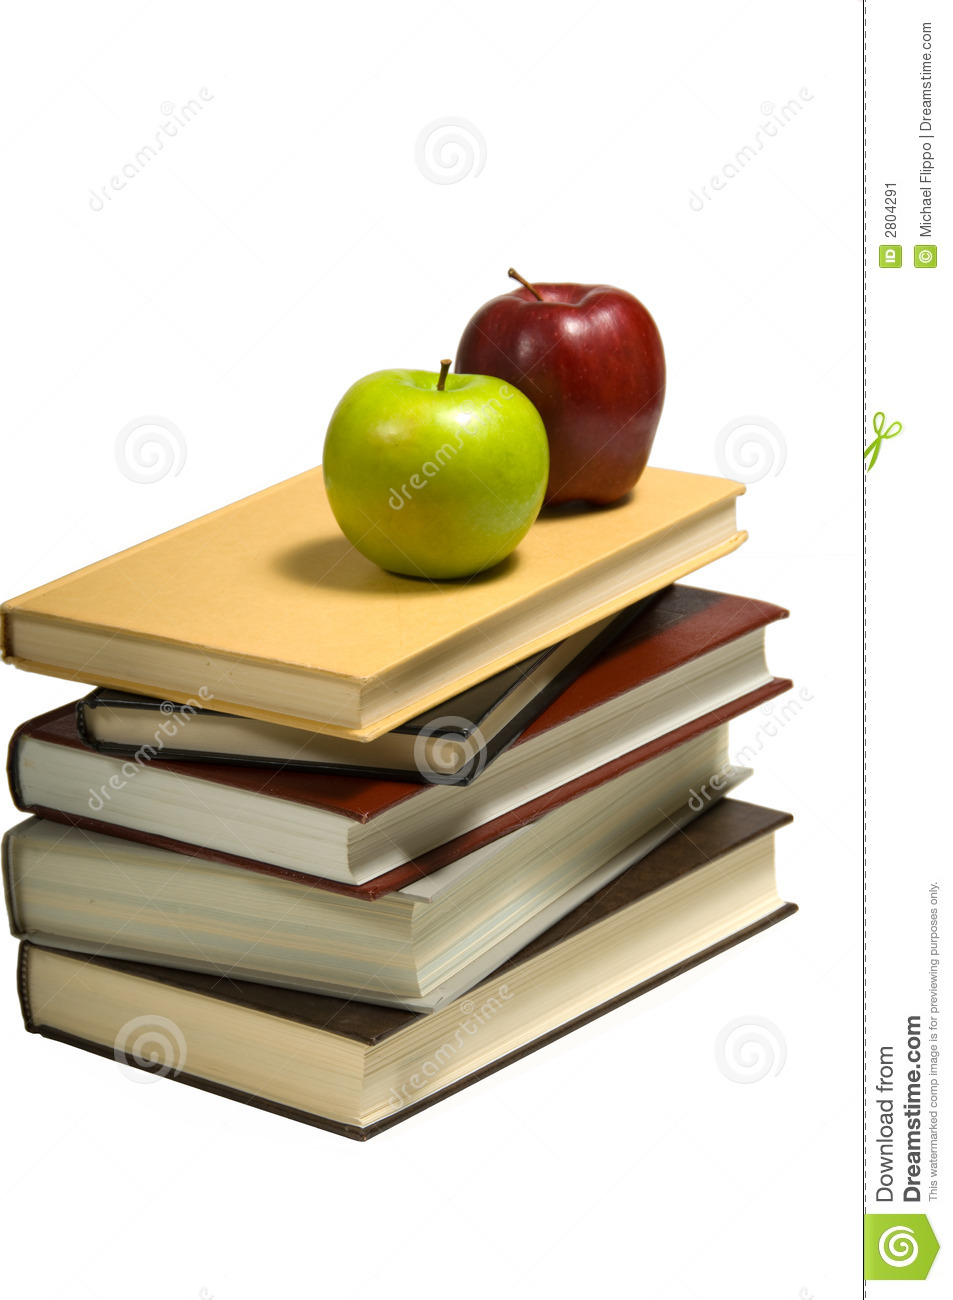 School Books With Apples And Pencils On White Background Mr No Pr No 4